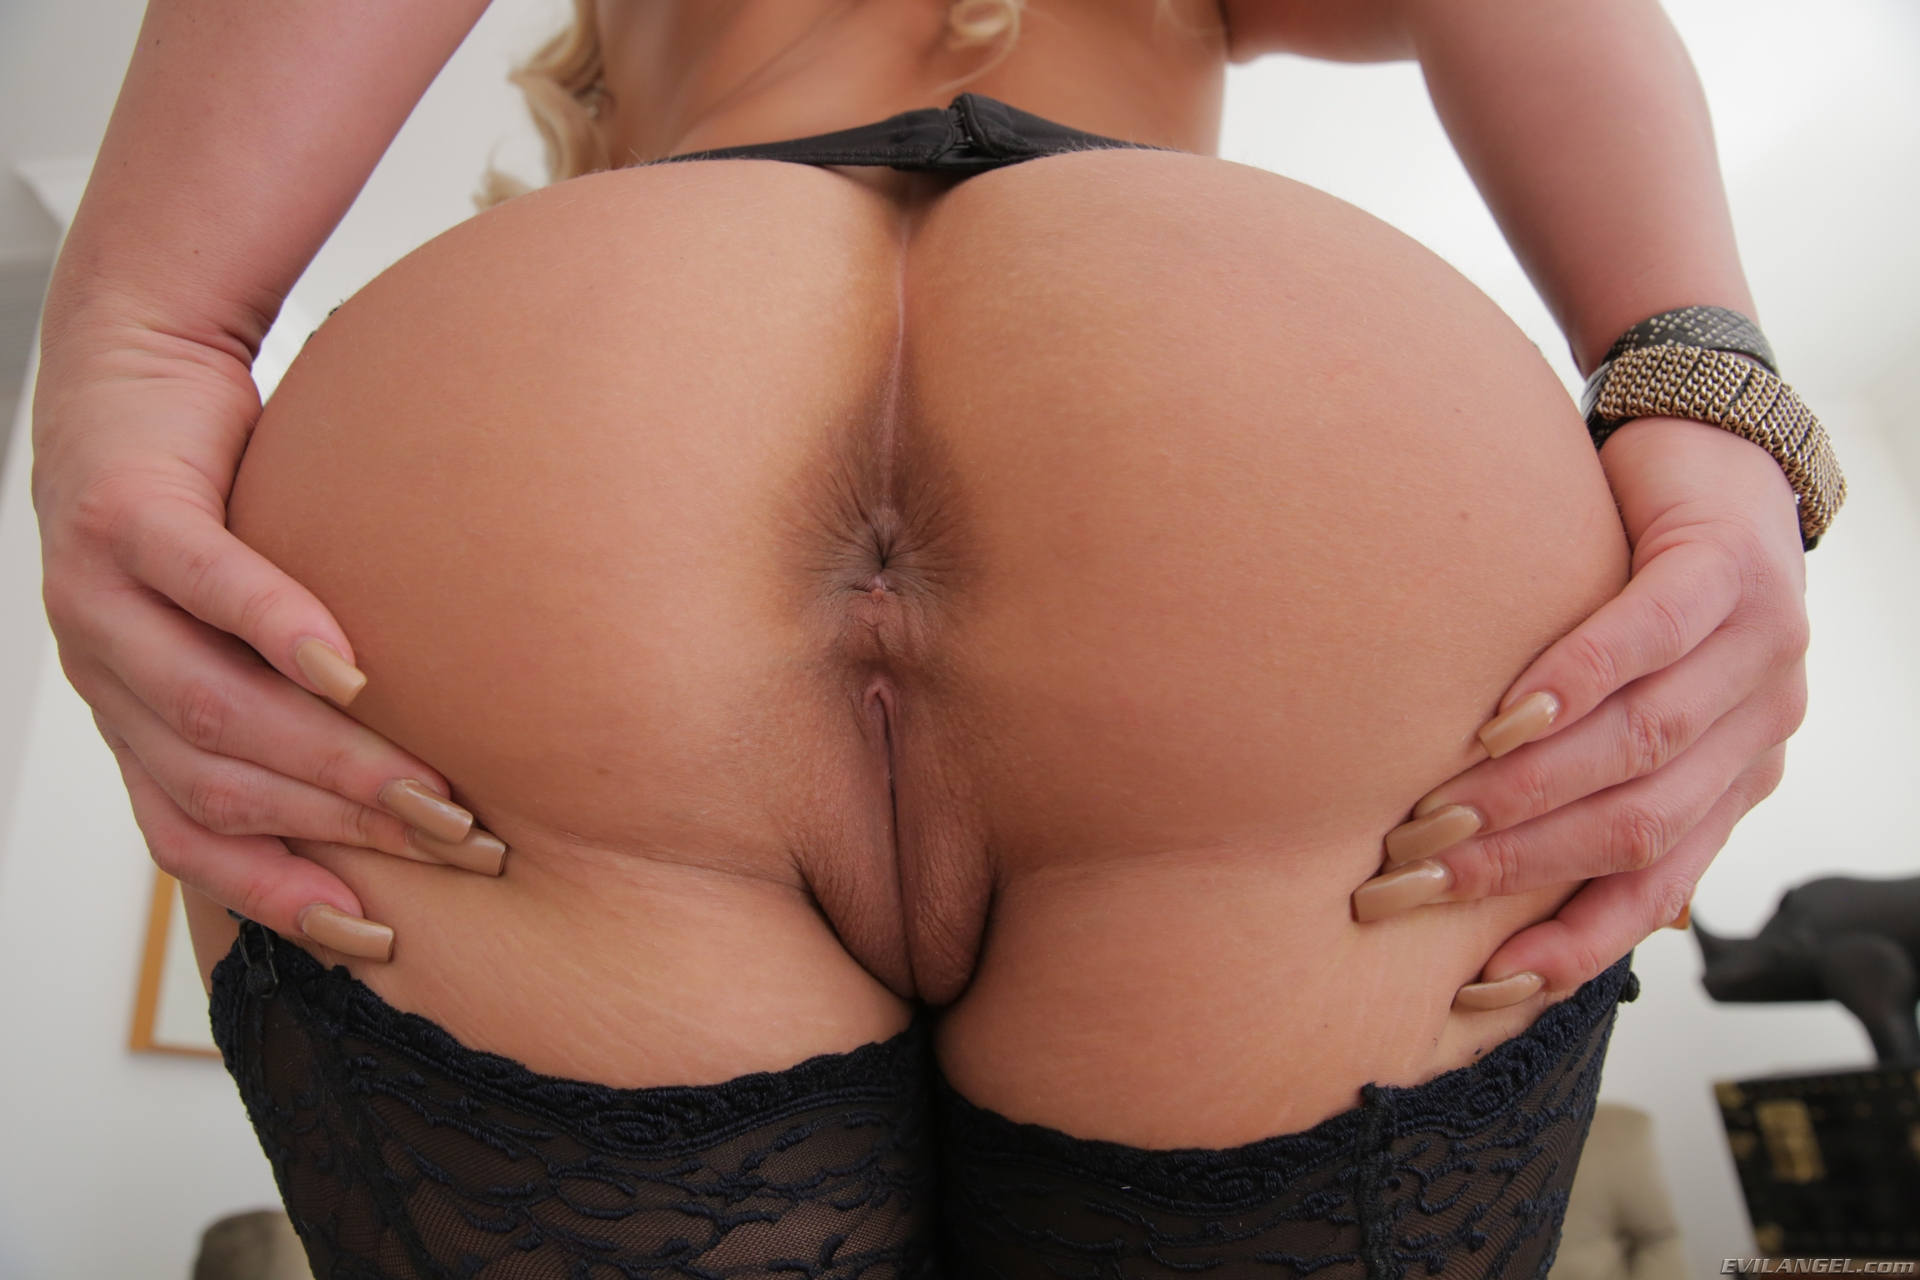 Big Ass Pornstar Solo Hd